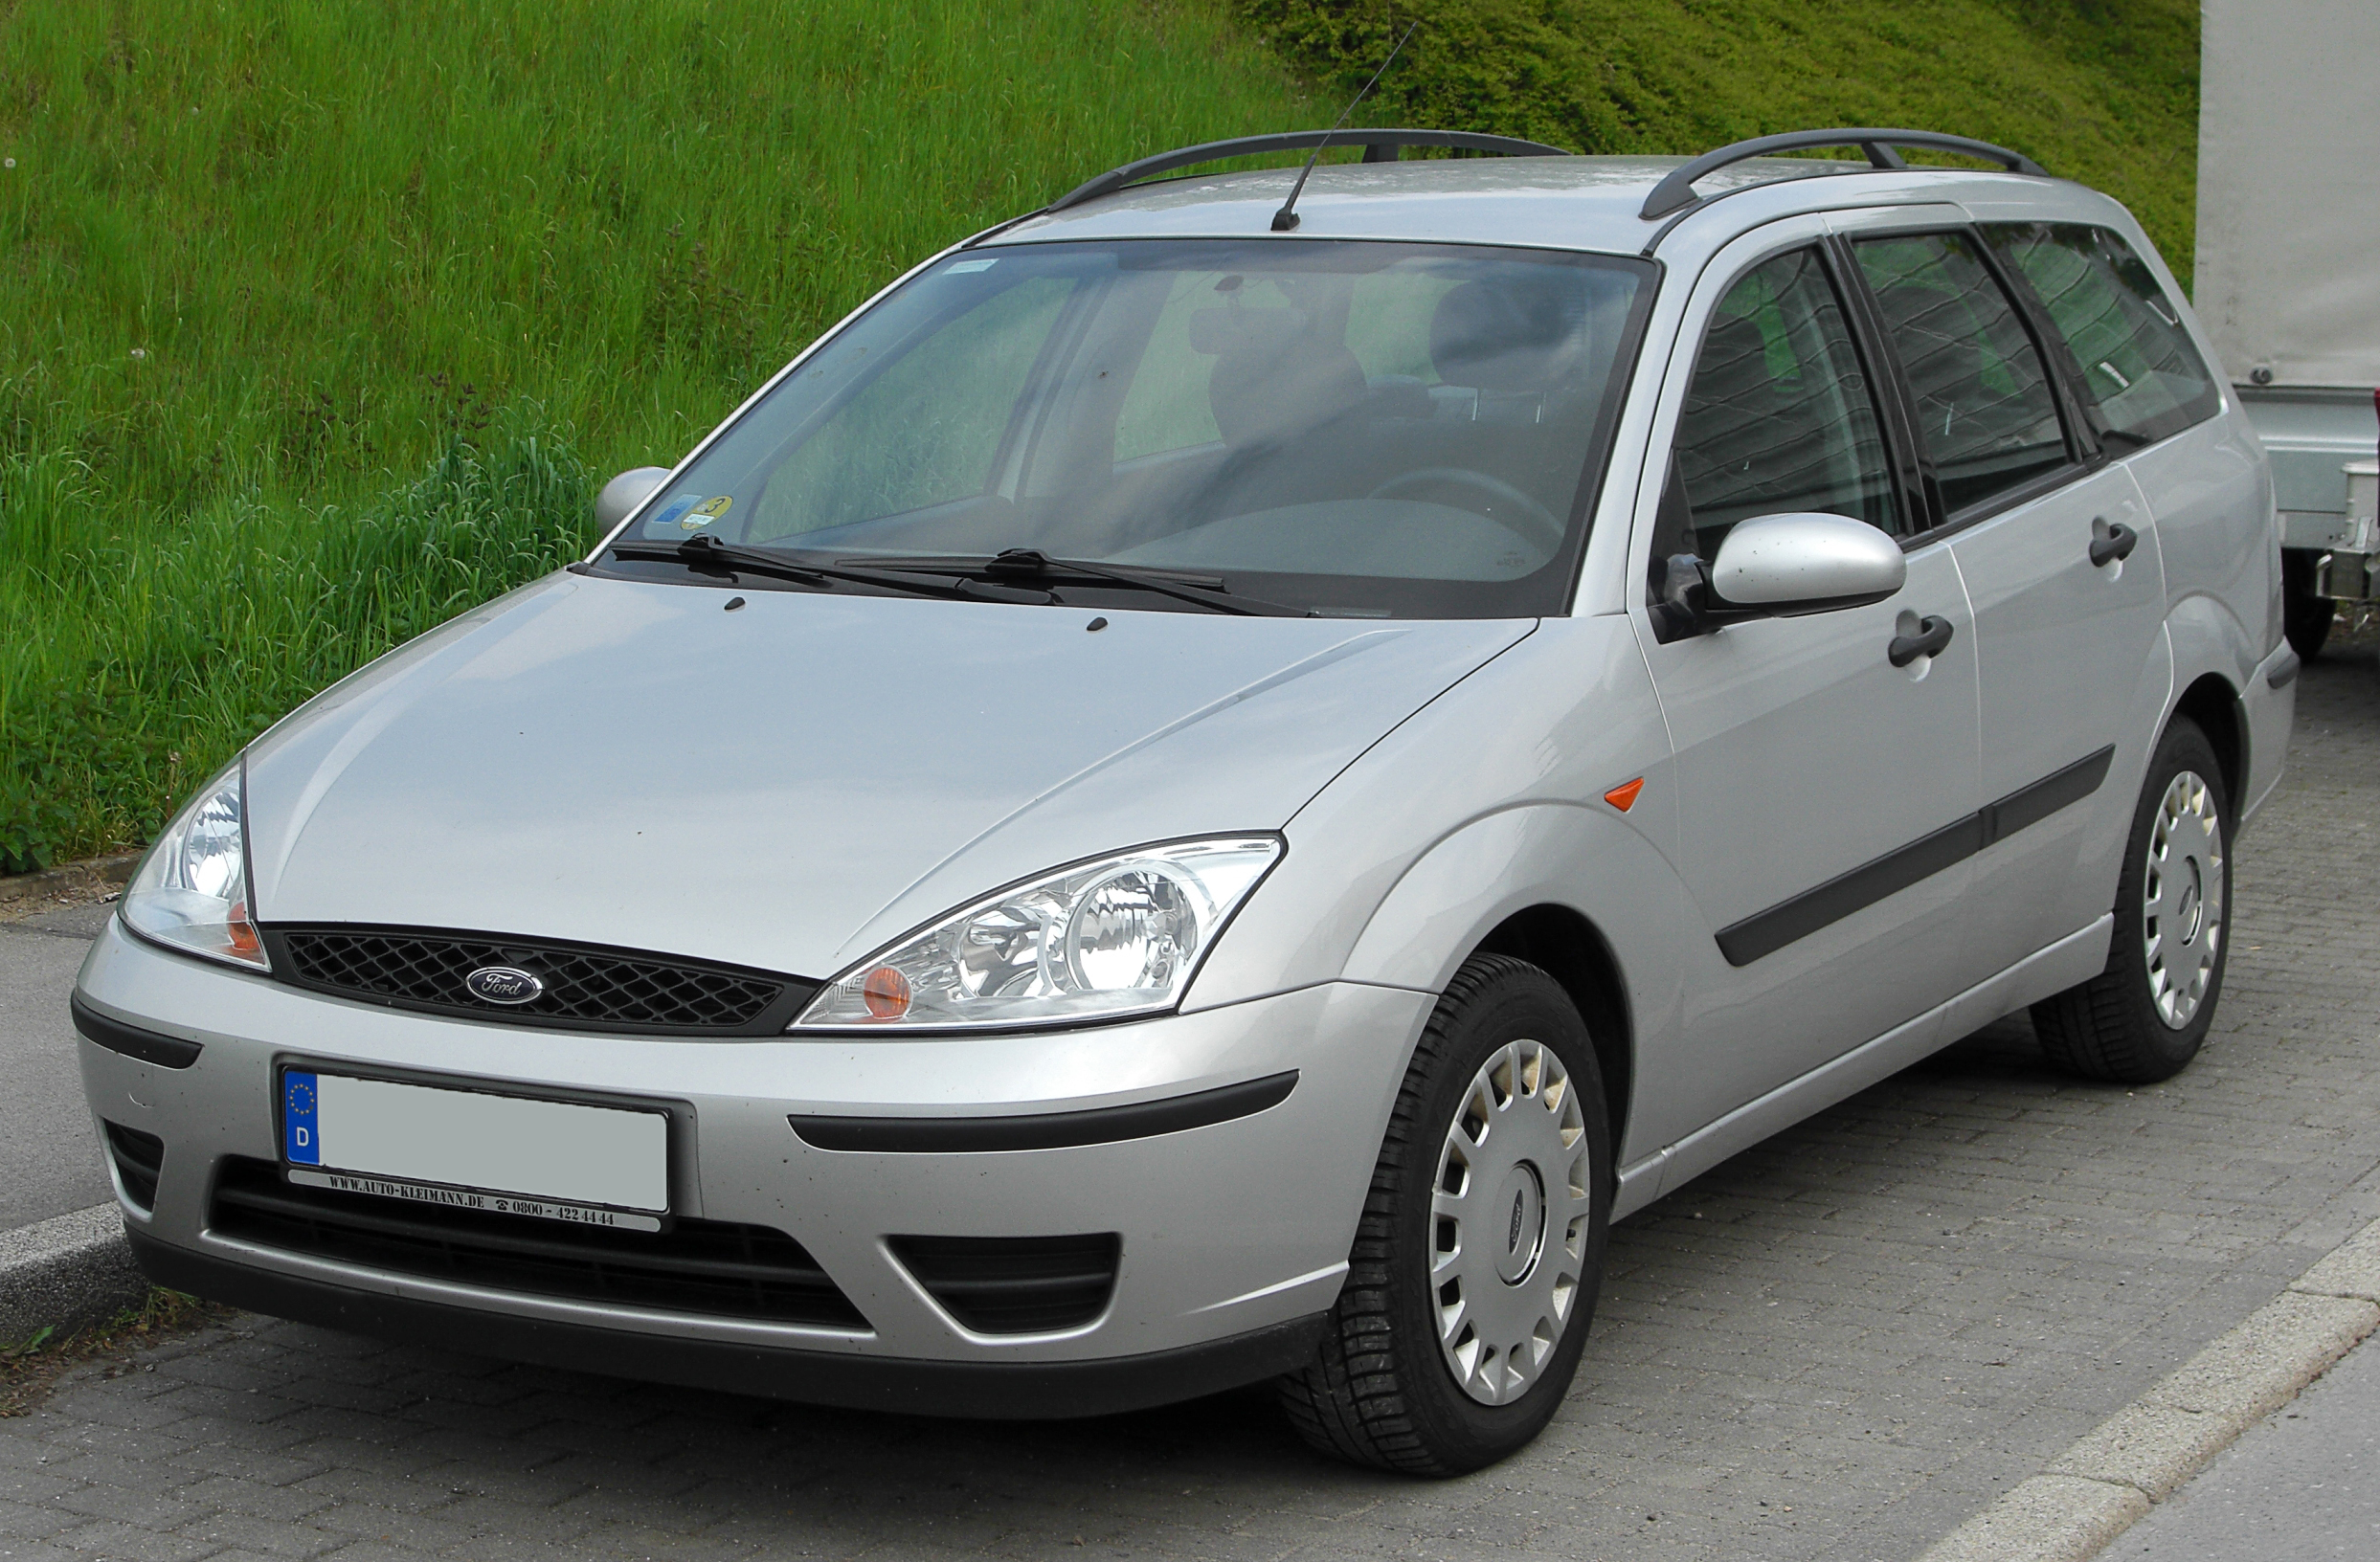 ford focus 2002 wallpaper